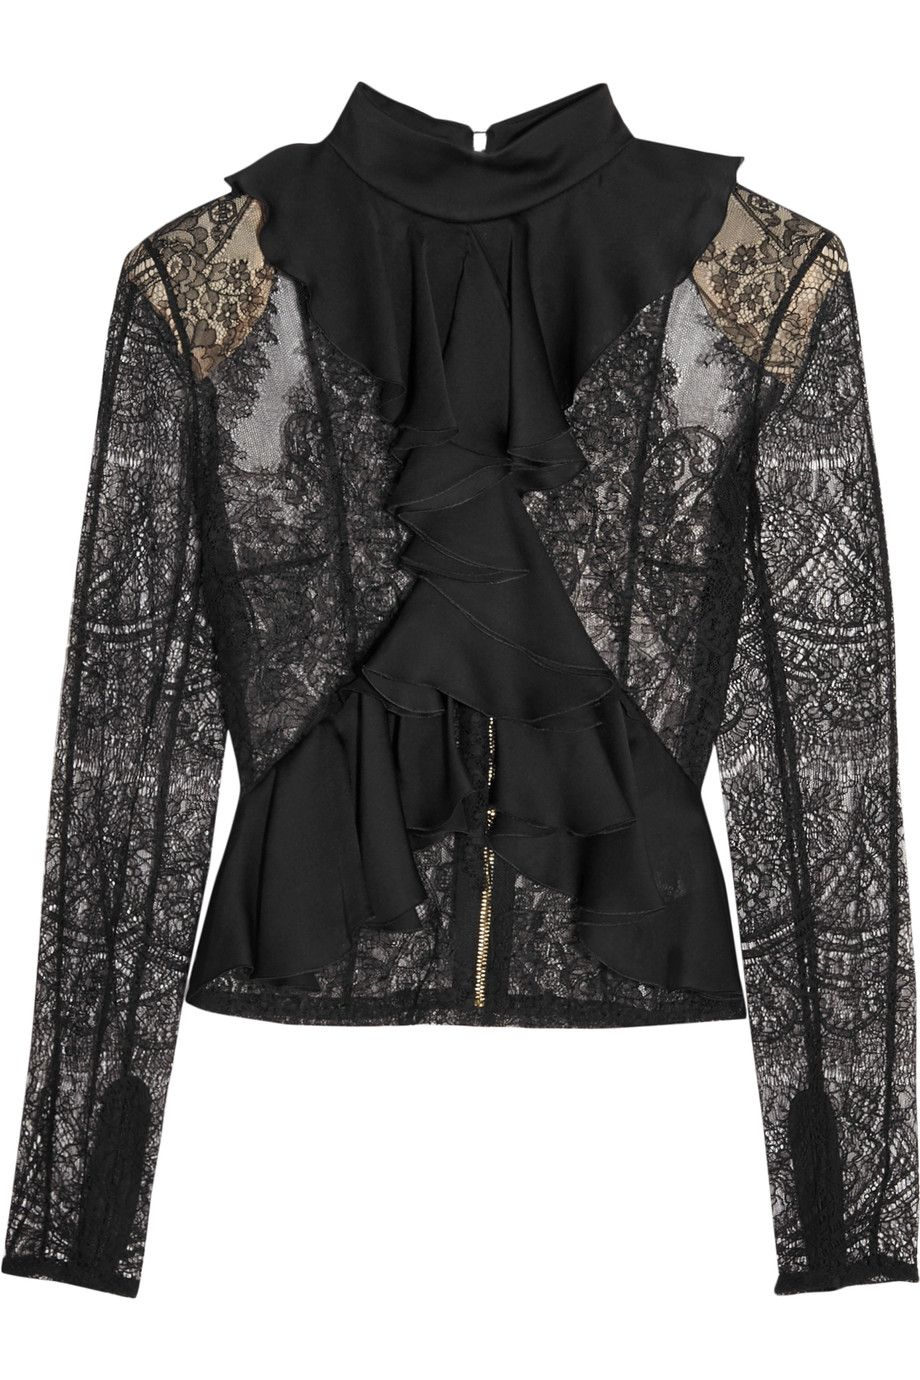 Balmain - Ruffled satin and lace top